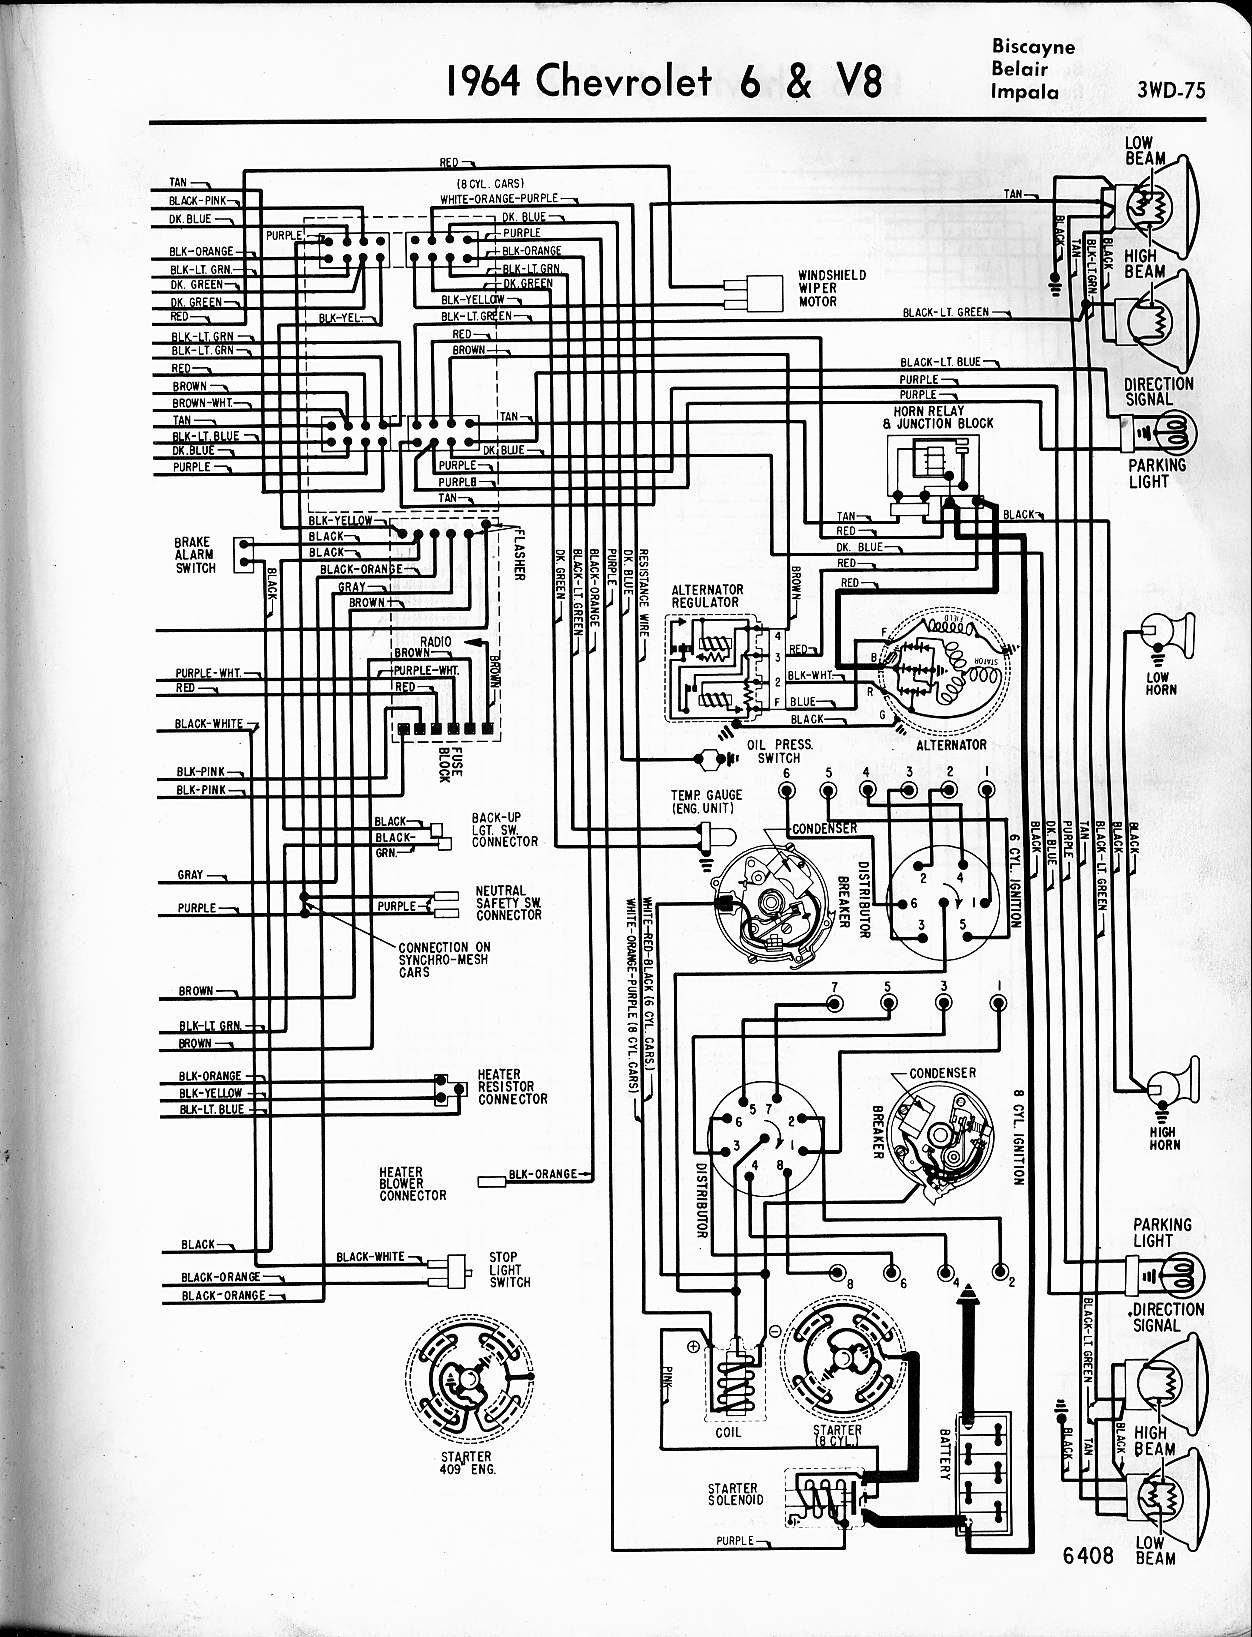 hight resolution of 1964 chevy wiring diagram wiring diagram explained rh 8 11 corruptionincoal org chevy ignition switch wiring diagram basic ignition wiring diagram